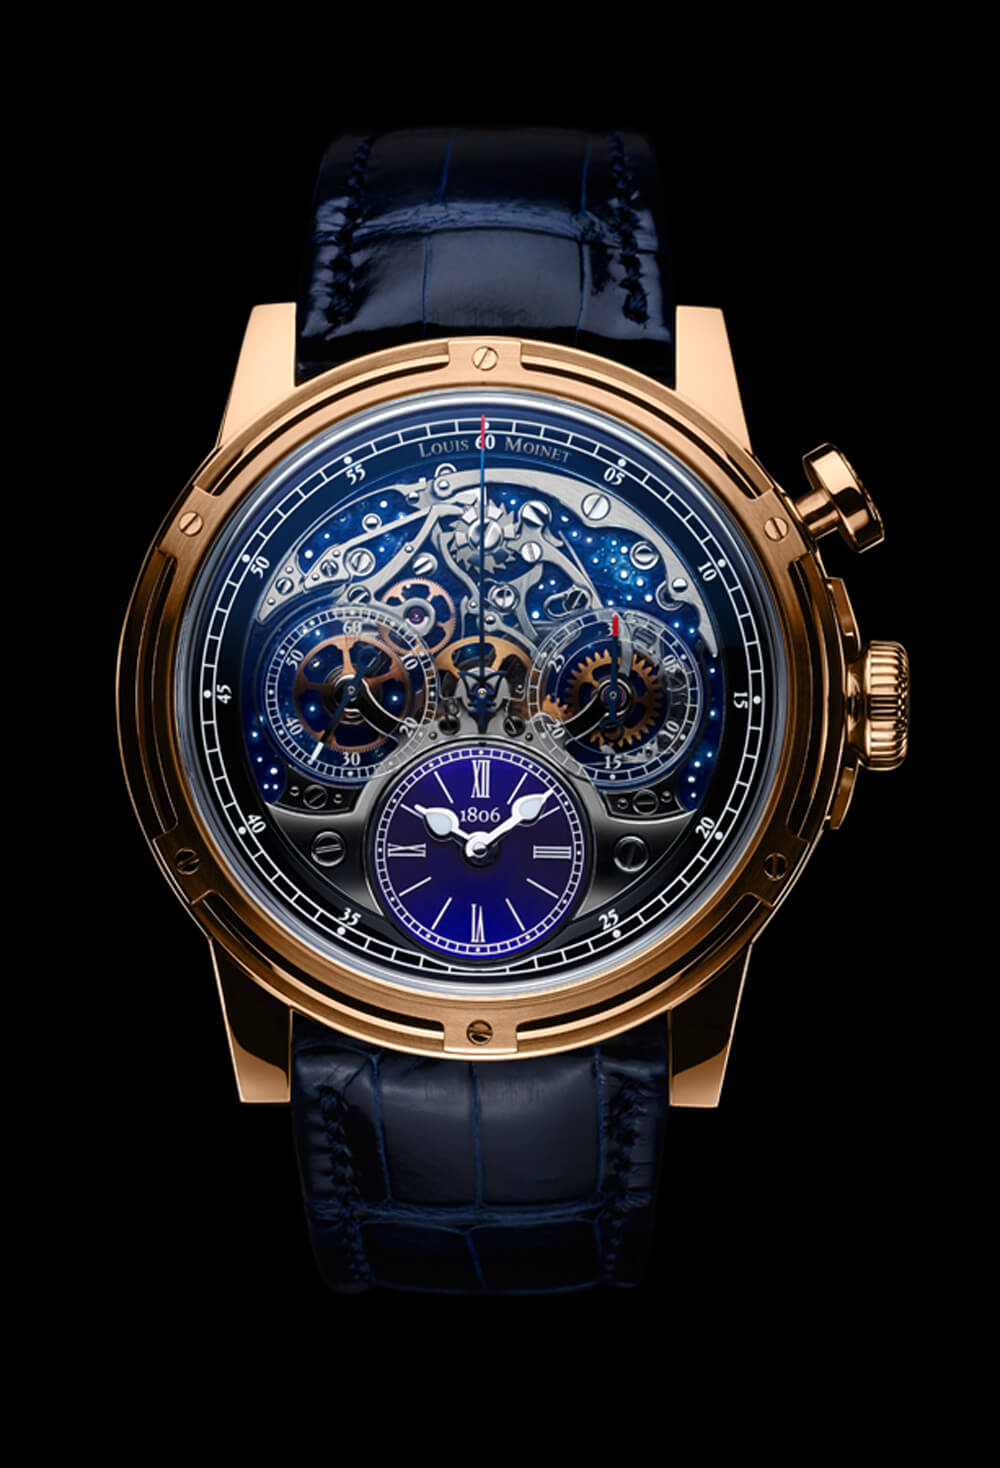 Louis Moinet timepiece created to celebrate 200th anniversary